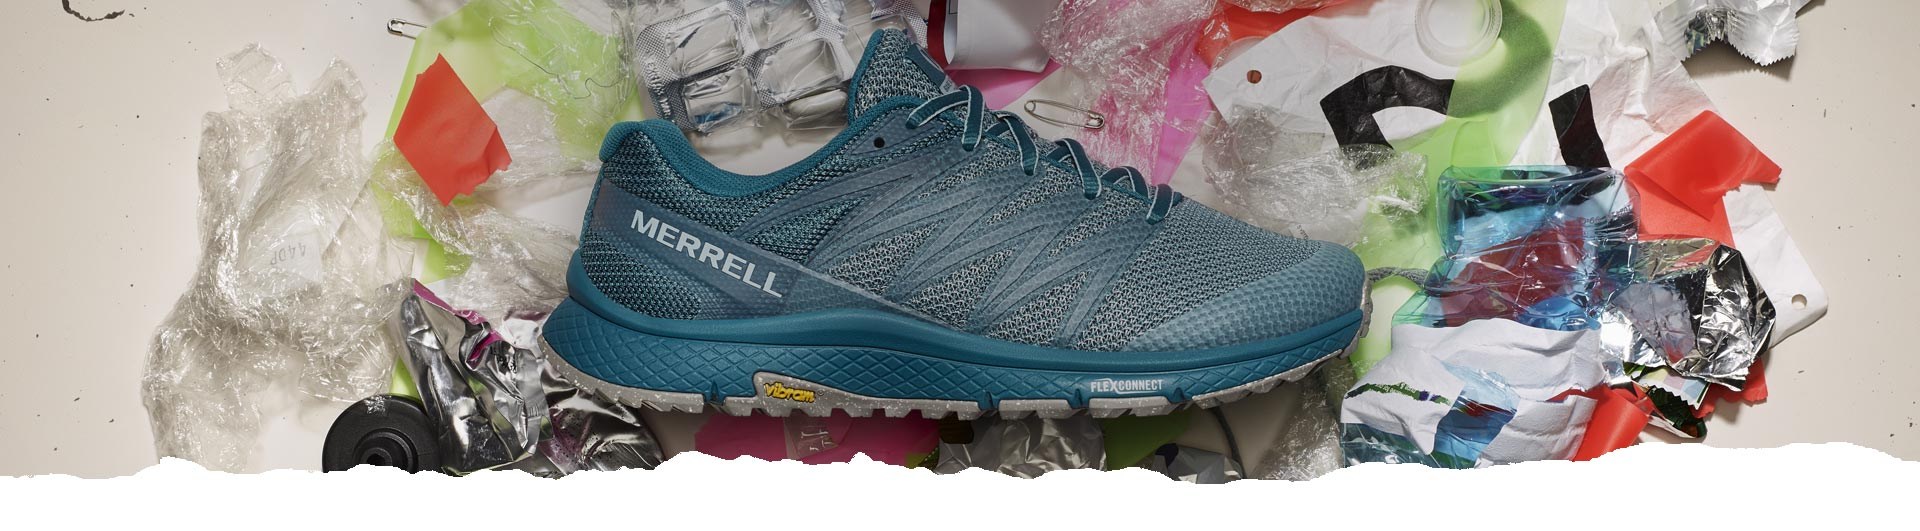 ef0b00be16e Official Merrell.com Site: The Outdoor Store for Hiking & Trail Running